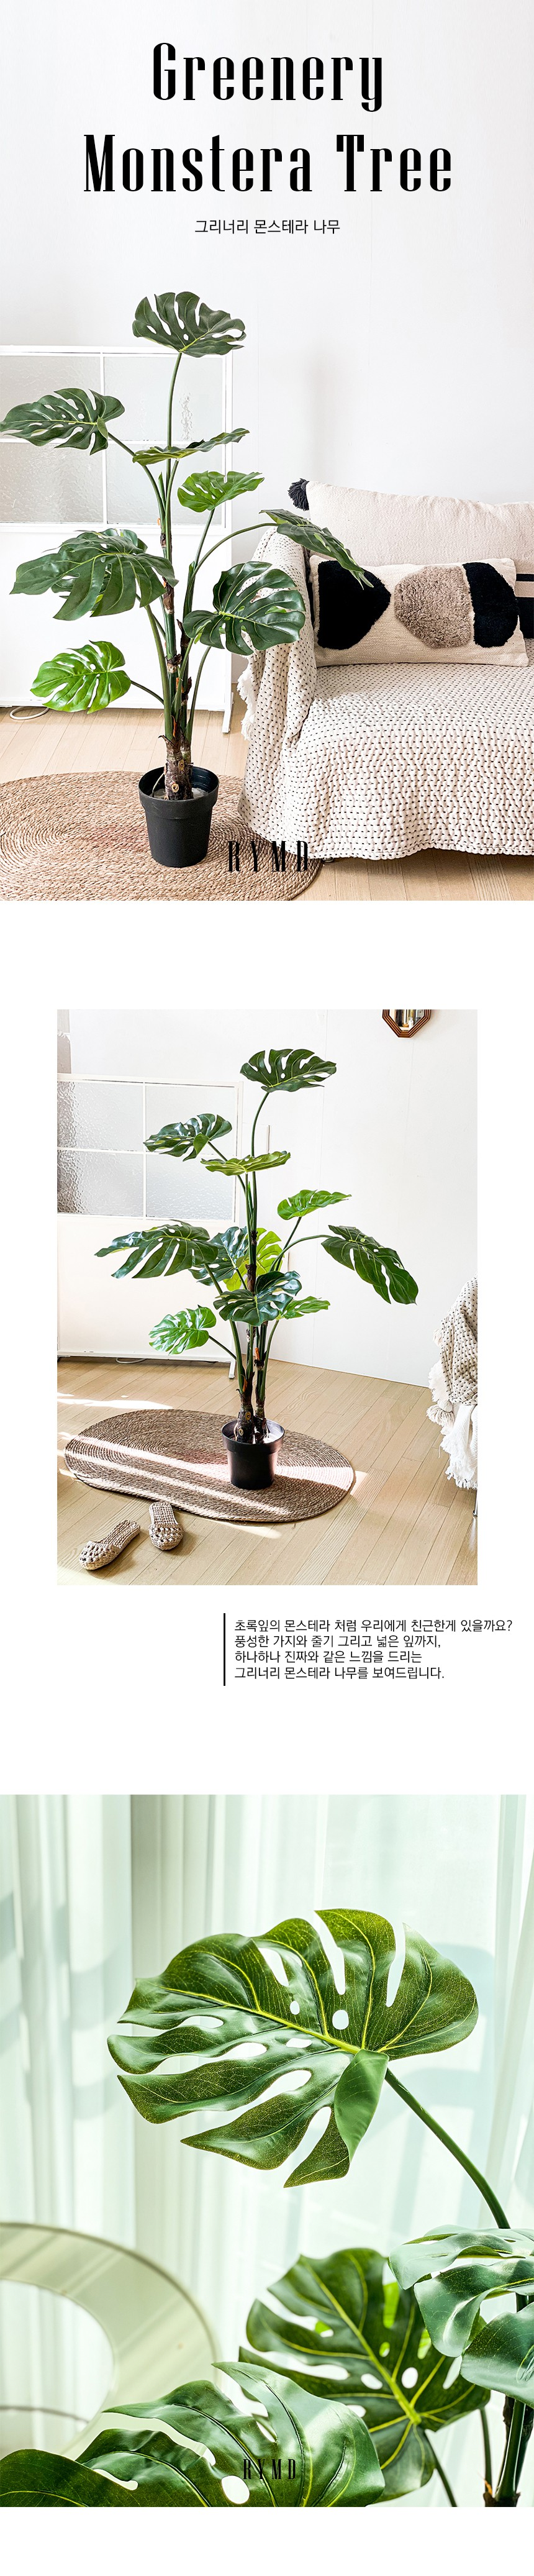 greenery-monstera-tree_01.jpg